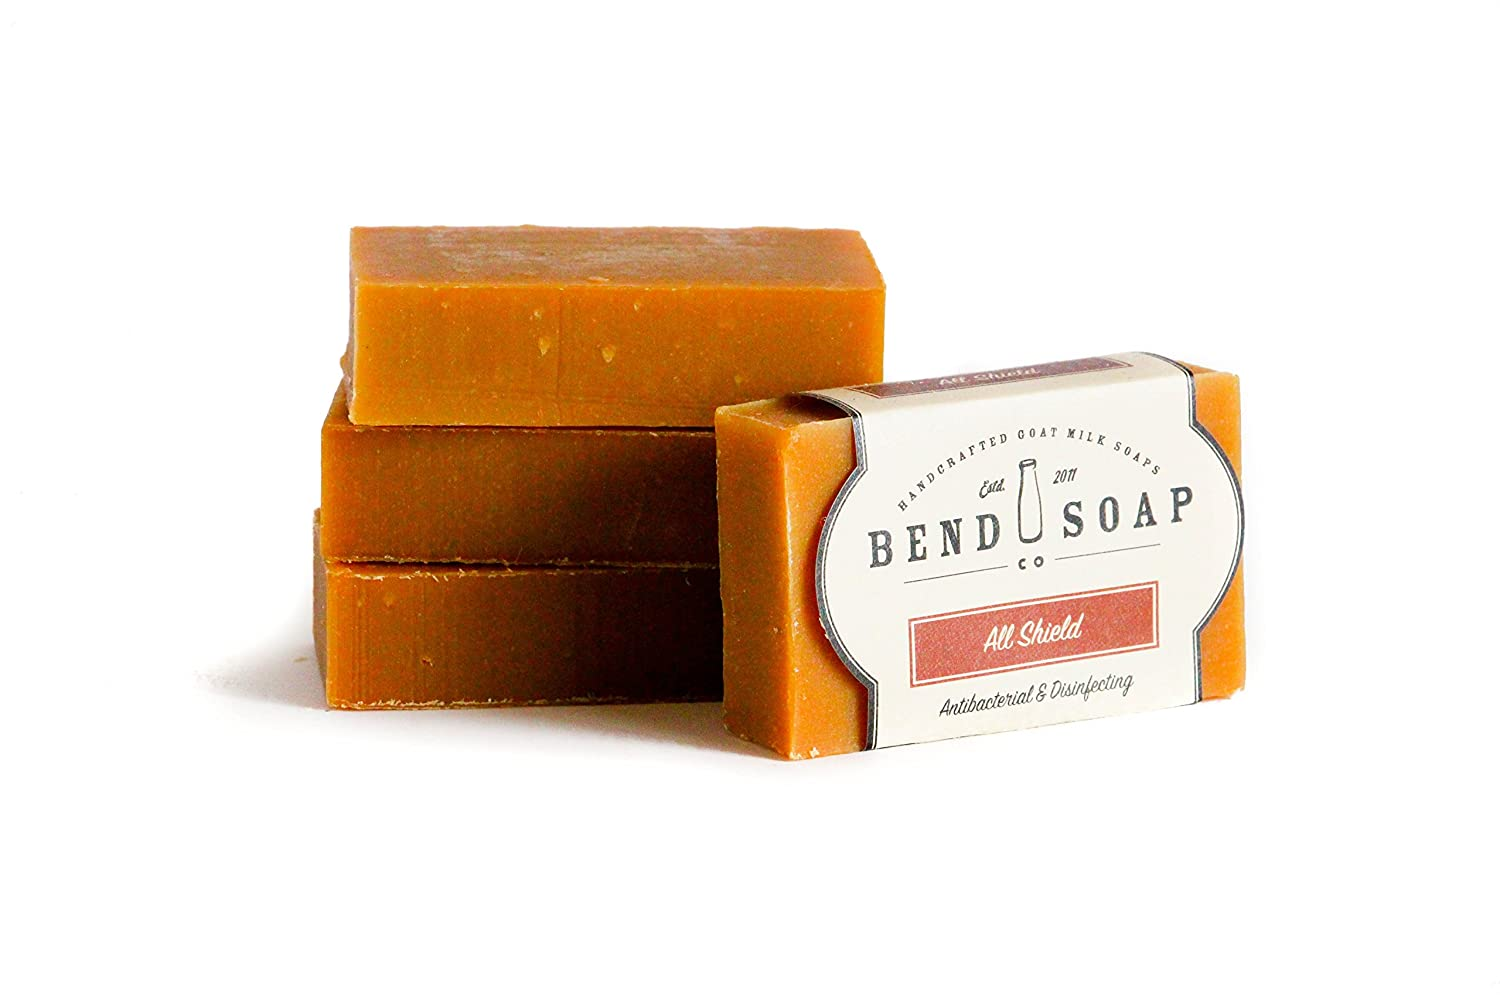 Bend Soap Company All Natural Handmade Goat Milk Soap for Dry Skin Relief, All Shield, 4 Count